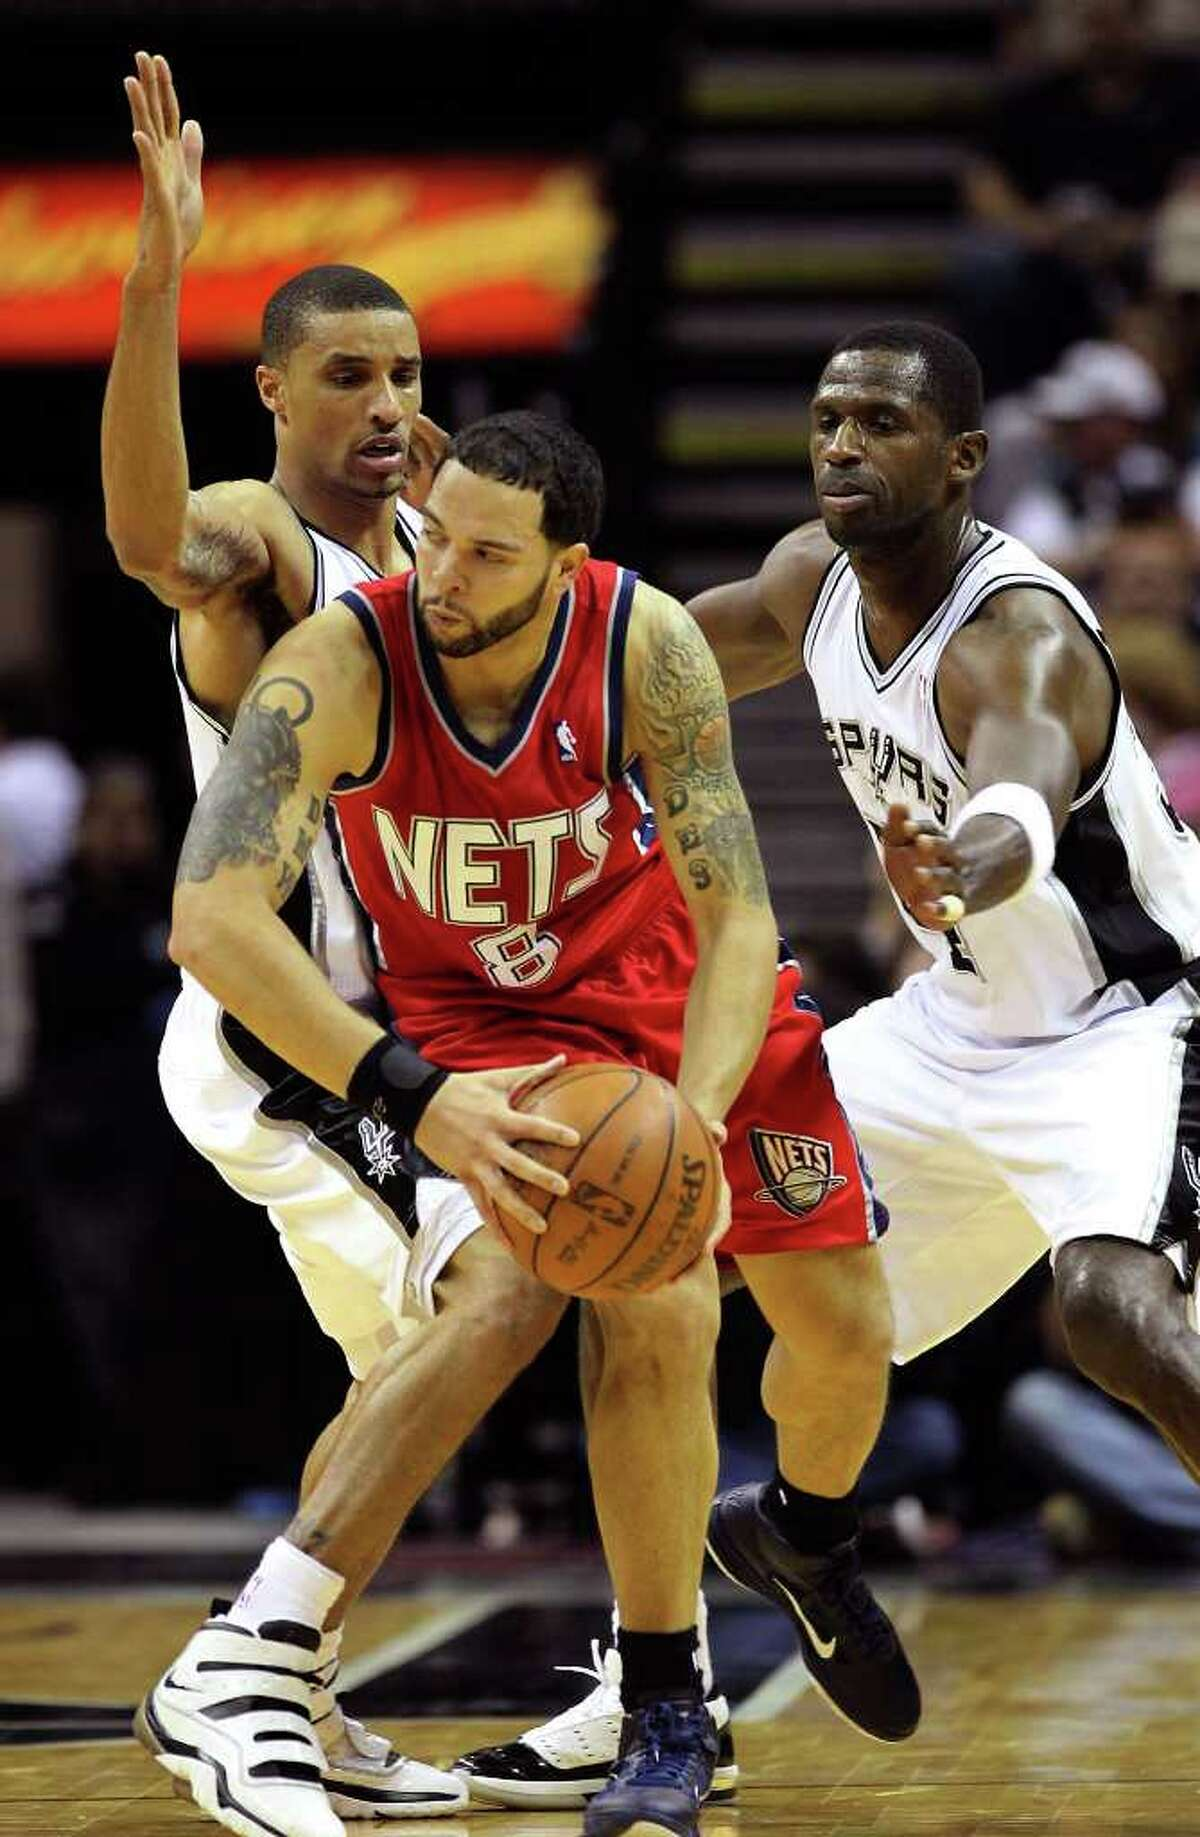 Spurs' George Hill (left) and Antonio McDyess (right) defend against New Jersey Nets' Deron Williams (08) in the first half at the AT&T Center on Friday, Feb. 25, 2011. Kin Man Hui/kmhui@express-news.net